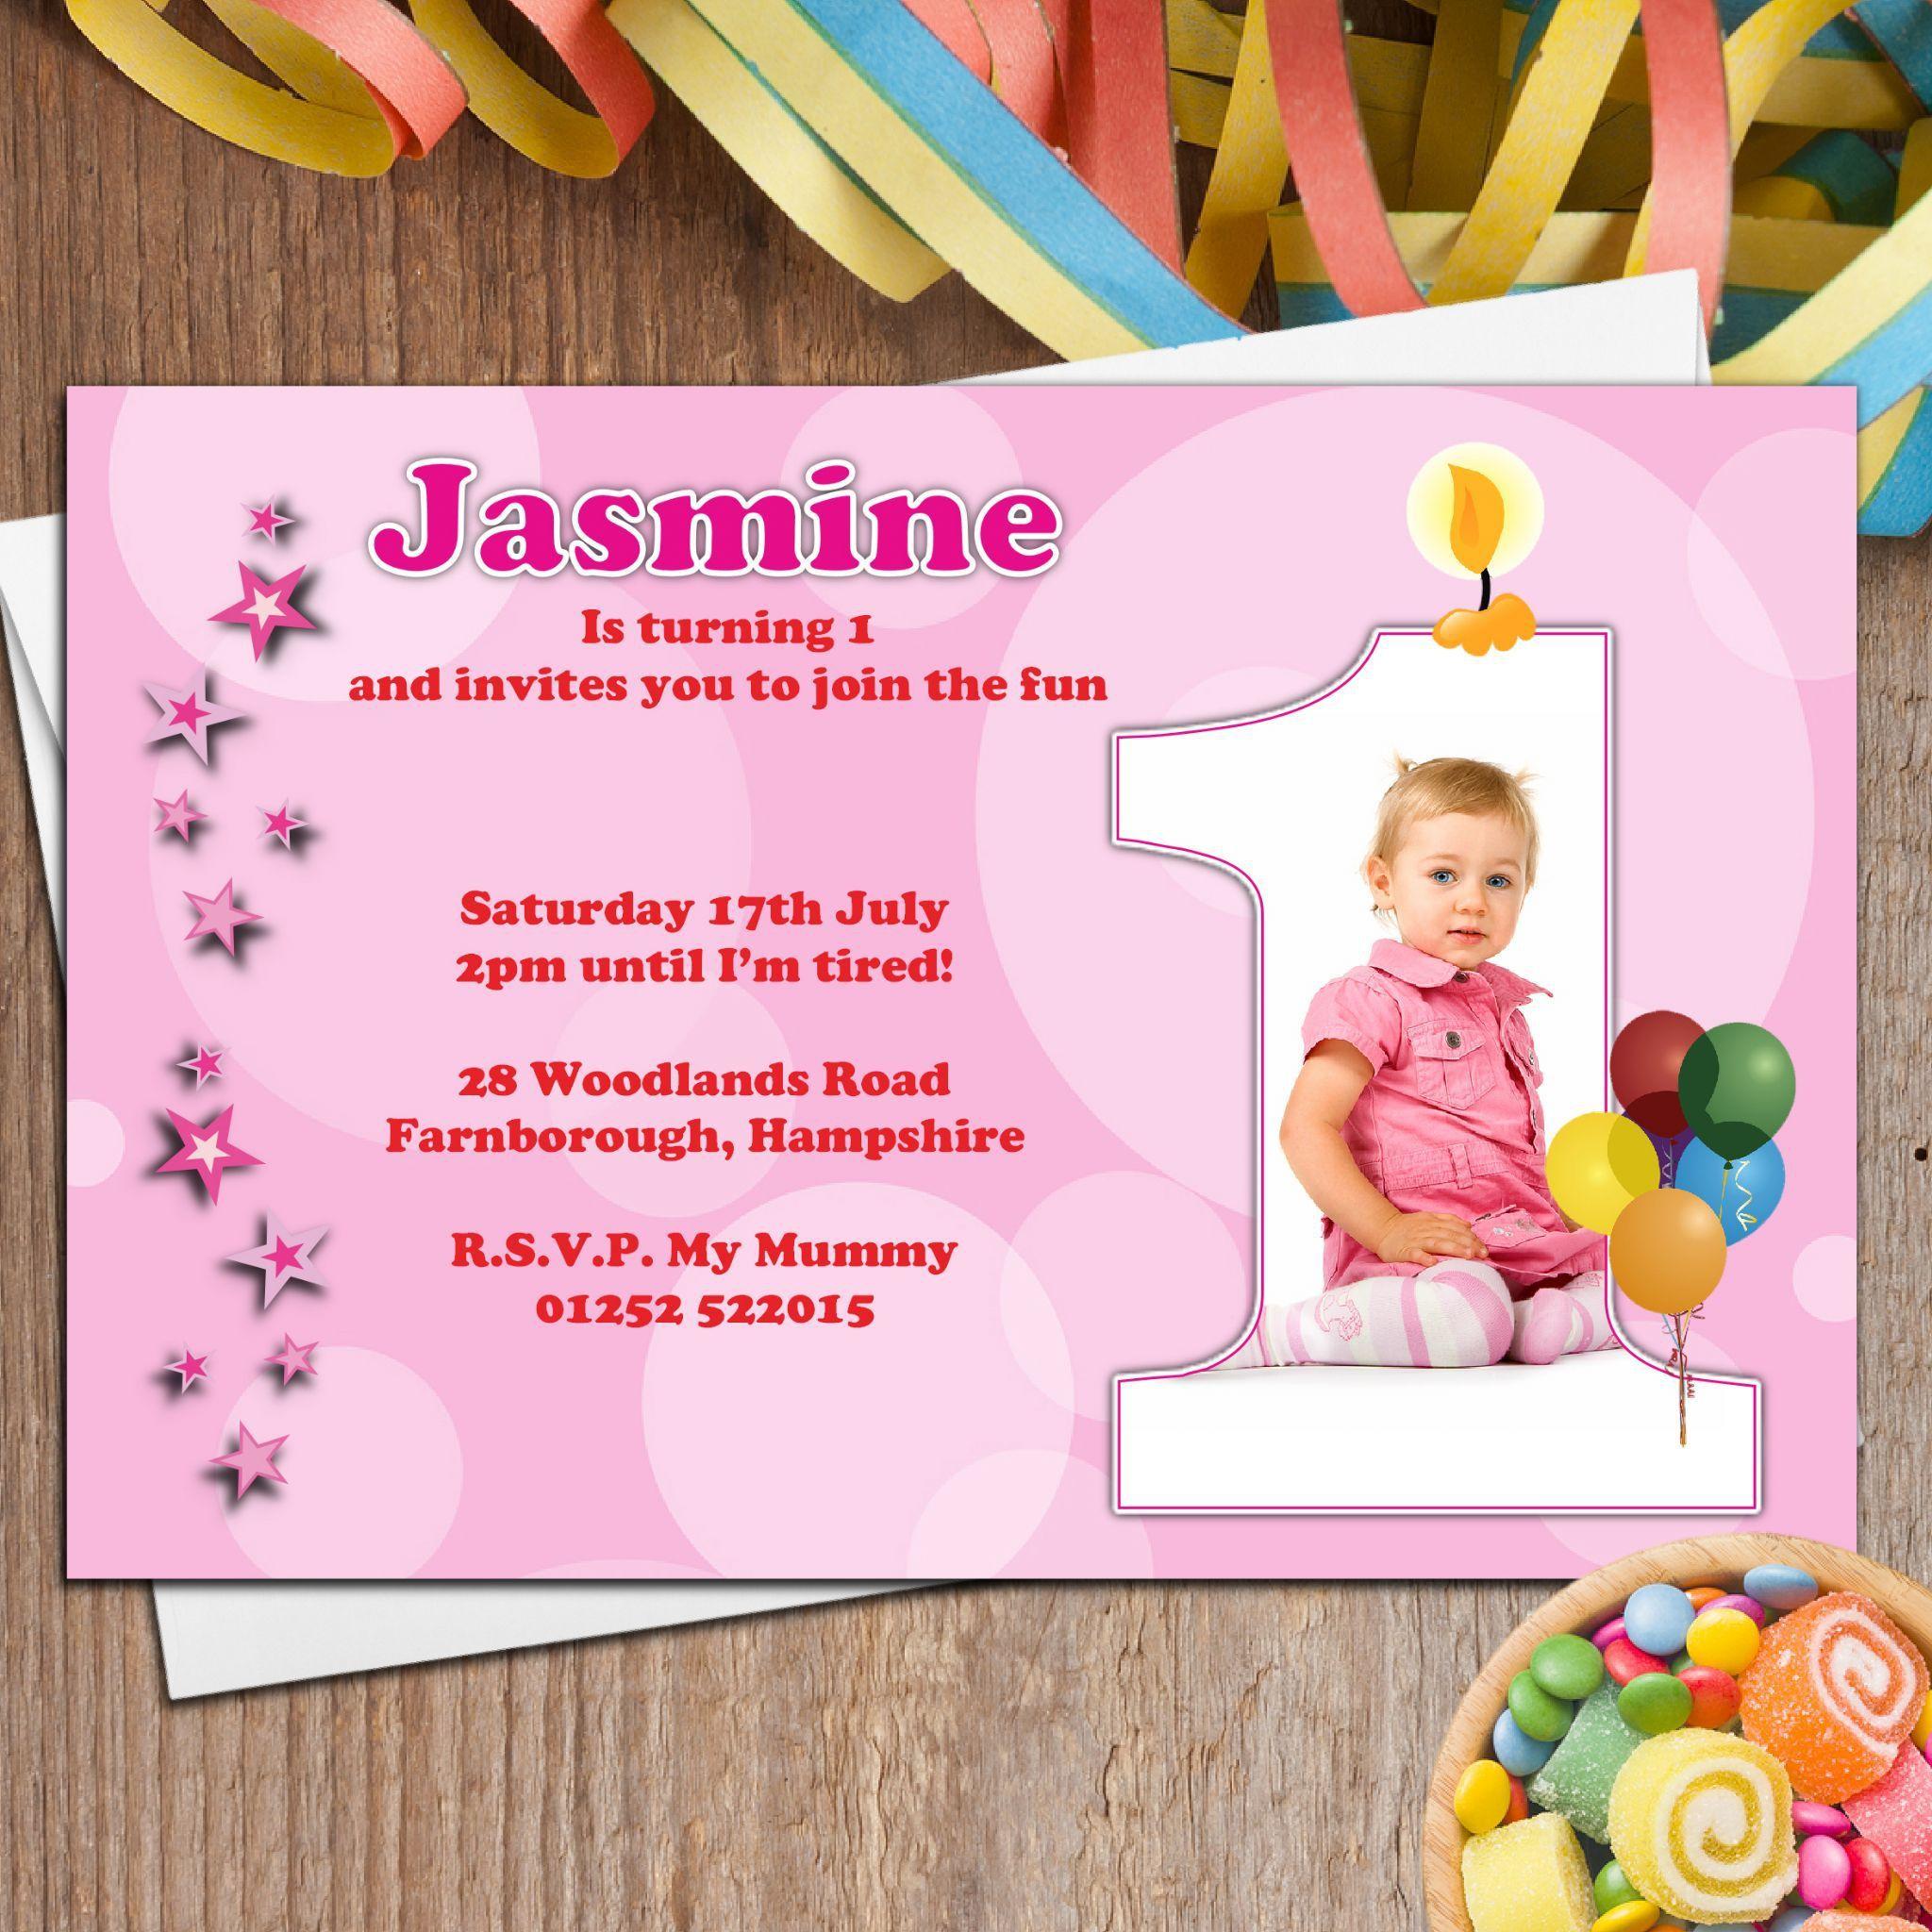 Stbirthdayandchristeninginvitations Baptism Invitations - Birthday invitation and christening